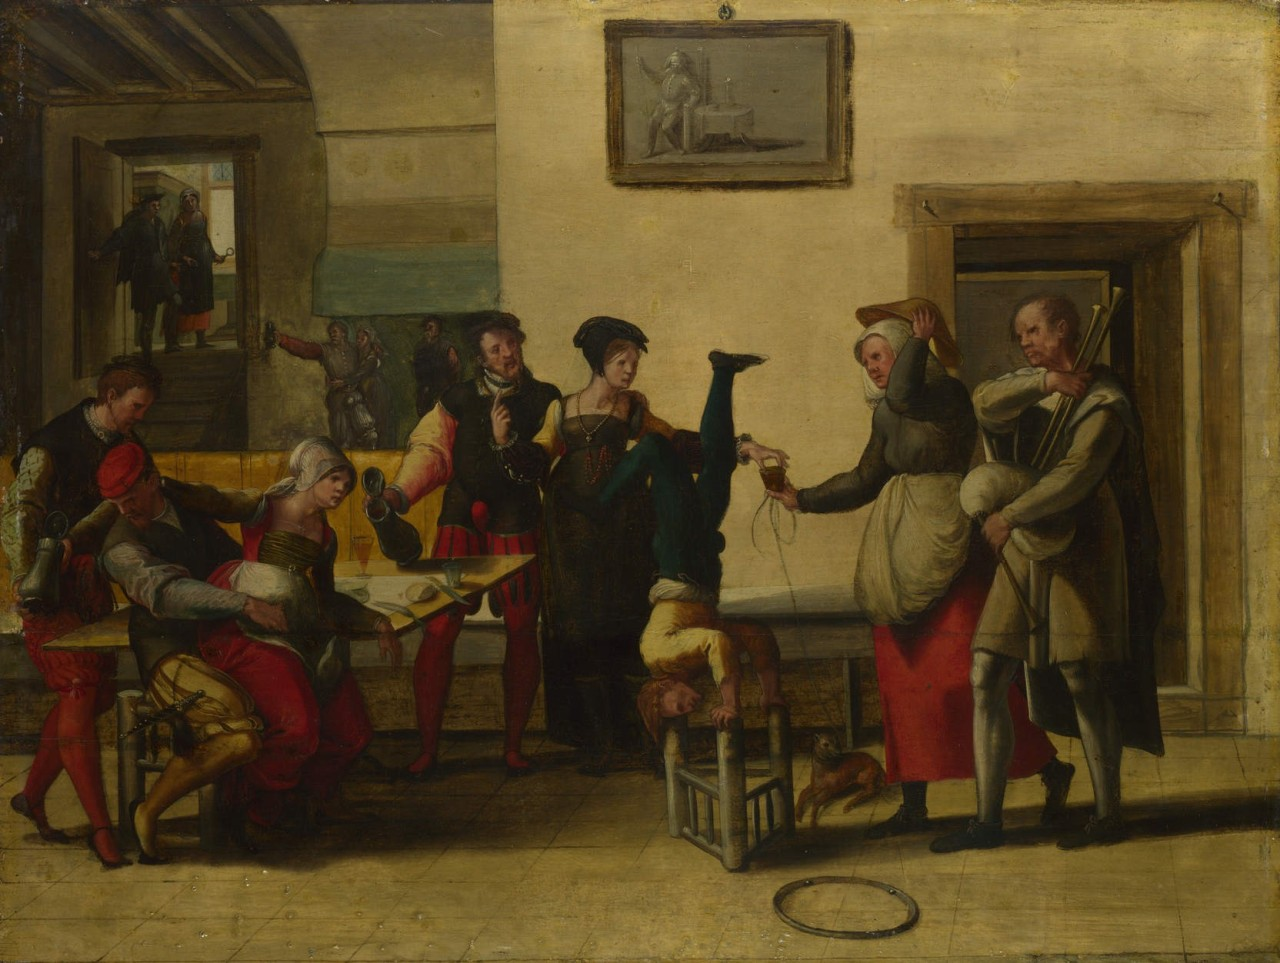 Brunswick_Monogrammist_-_Itinerant_Entertainers_in_a_Brothel